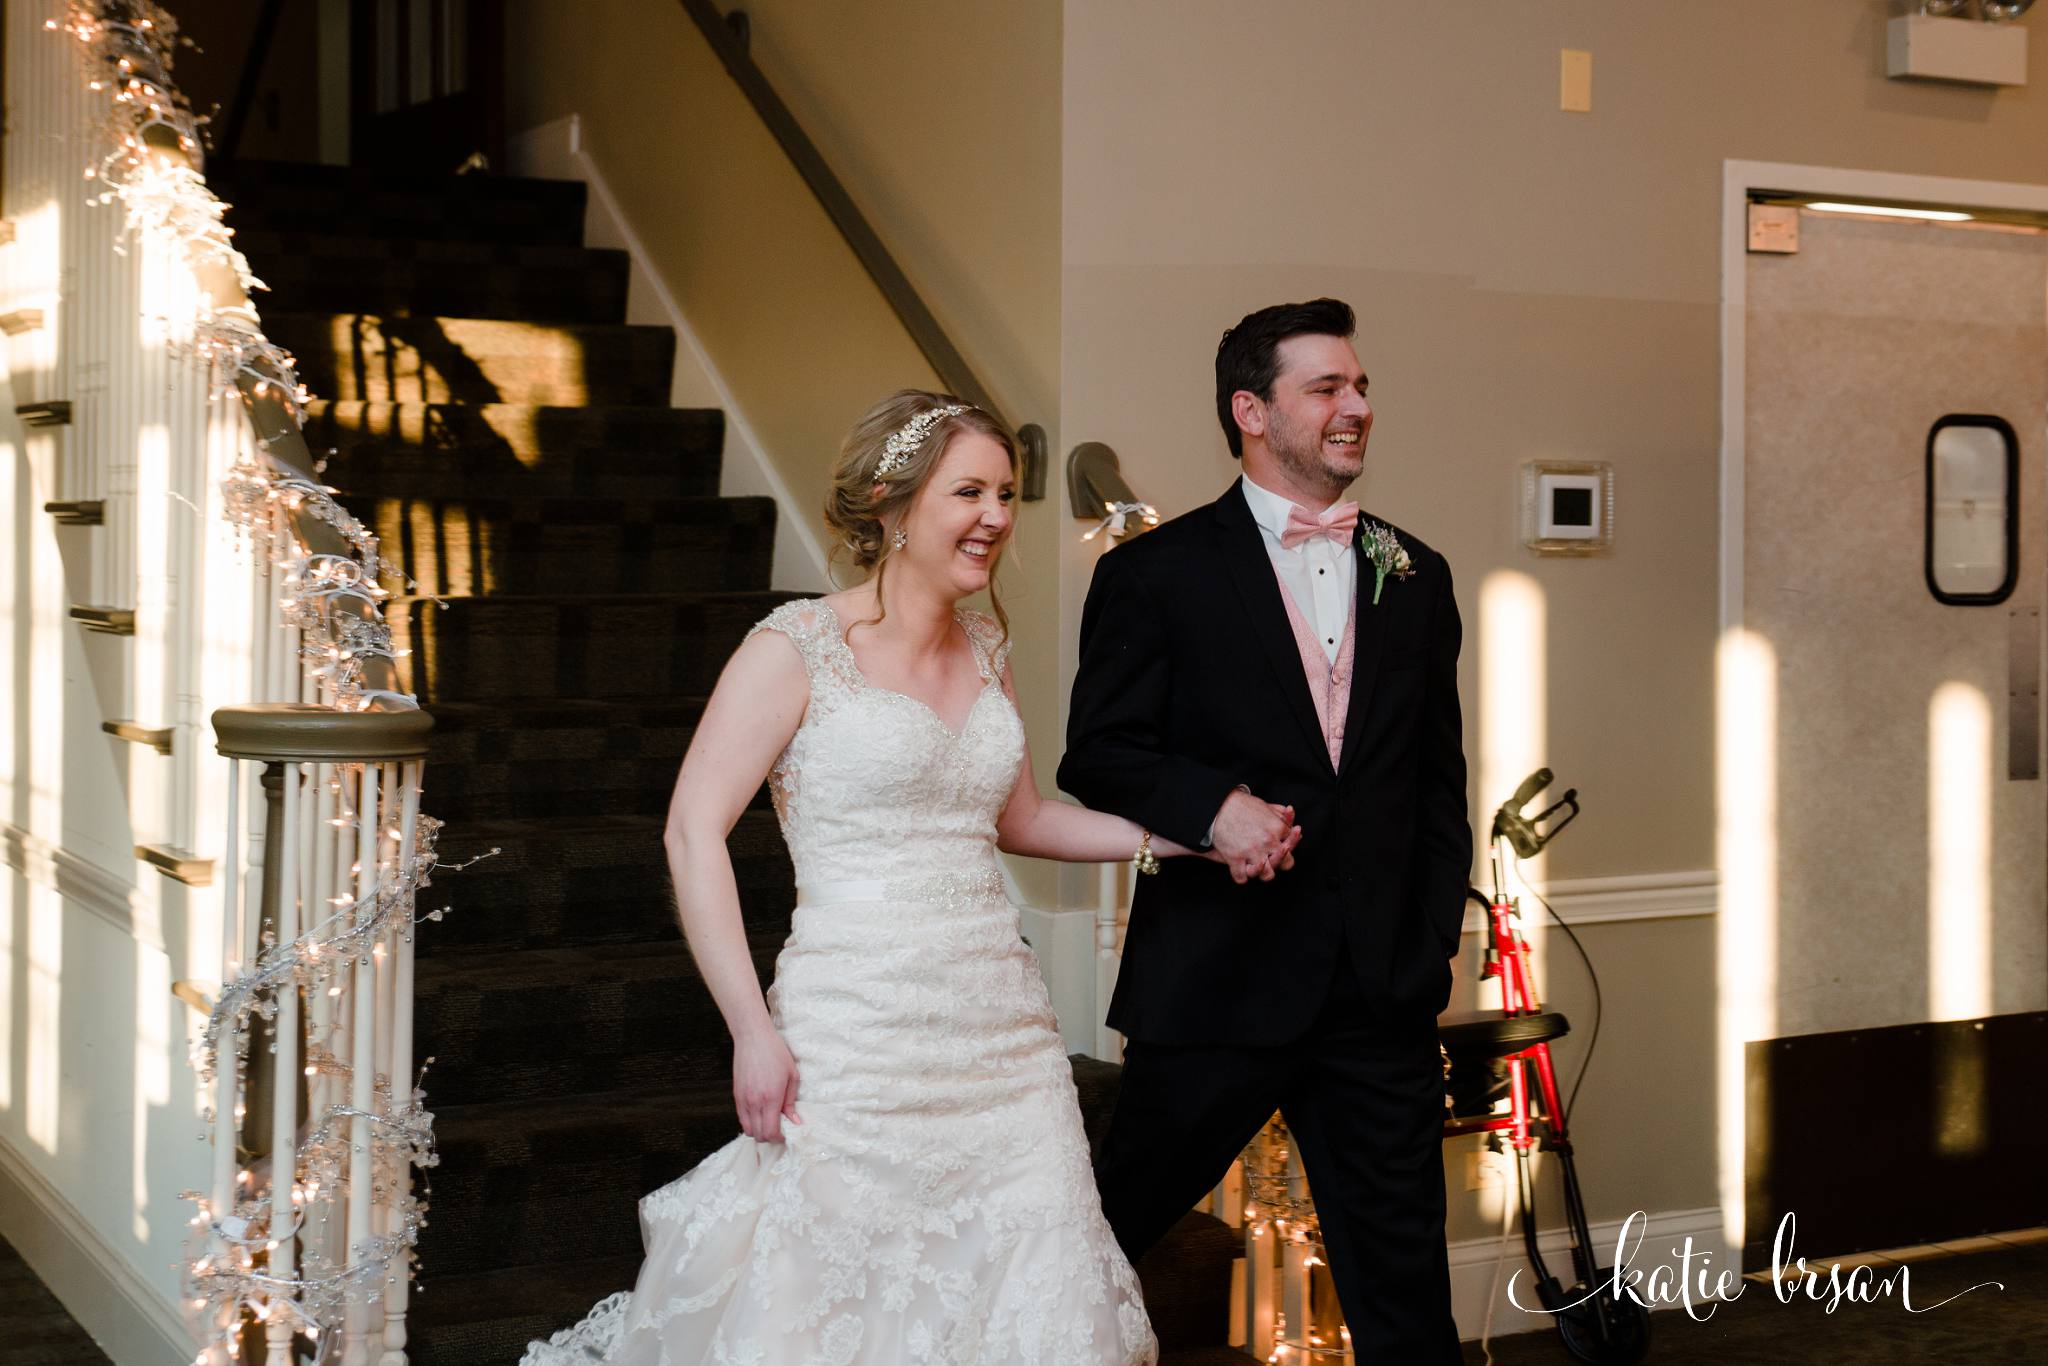 Mokena_Lemont_Wedding_Ruffled_Feathers_Wedding_1406.jpg